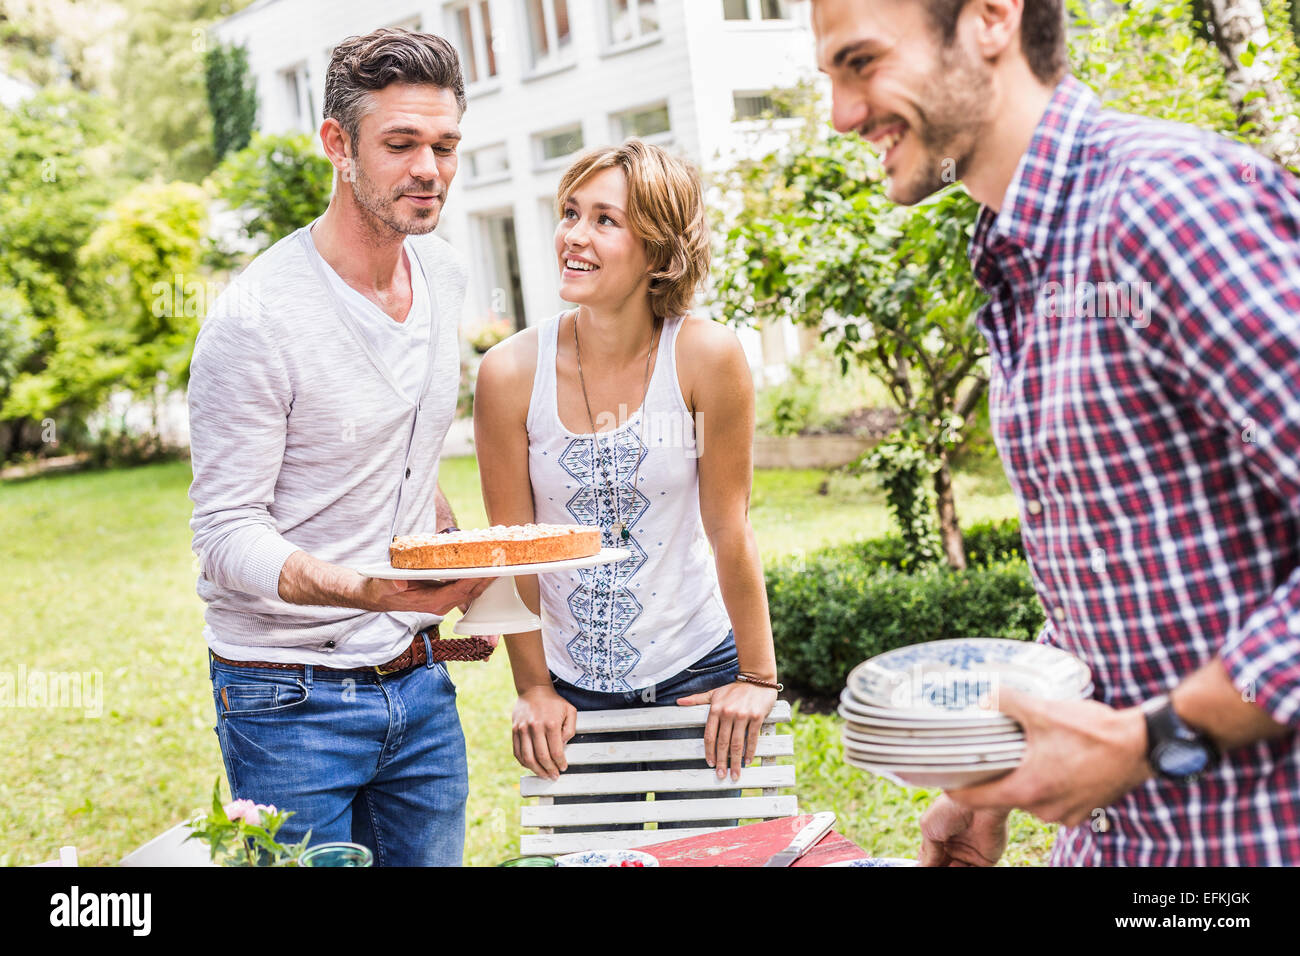 Group of friends setting up garden party, mid adult man carrying cake - Stock Image